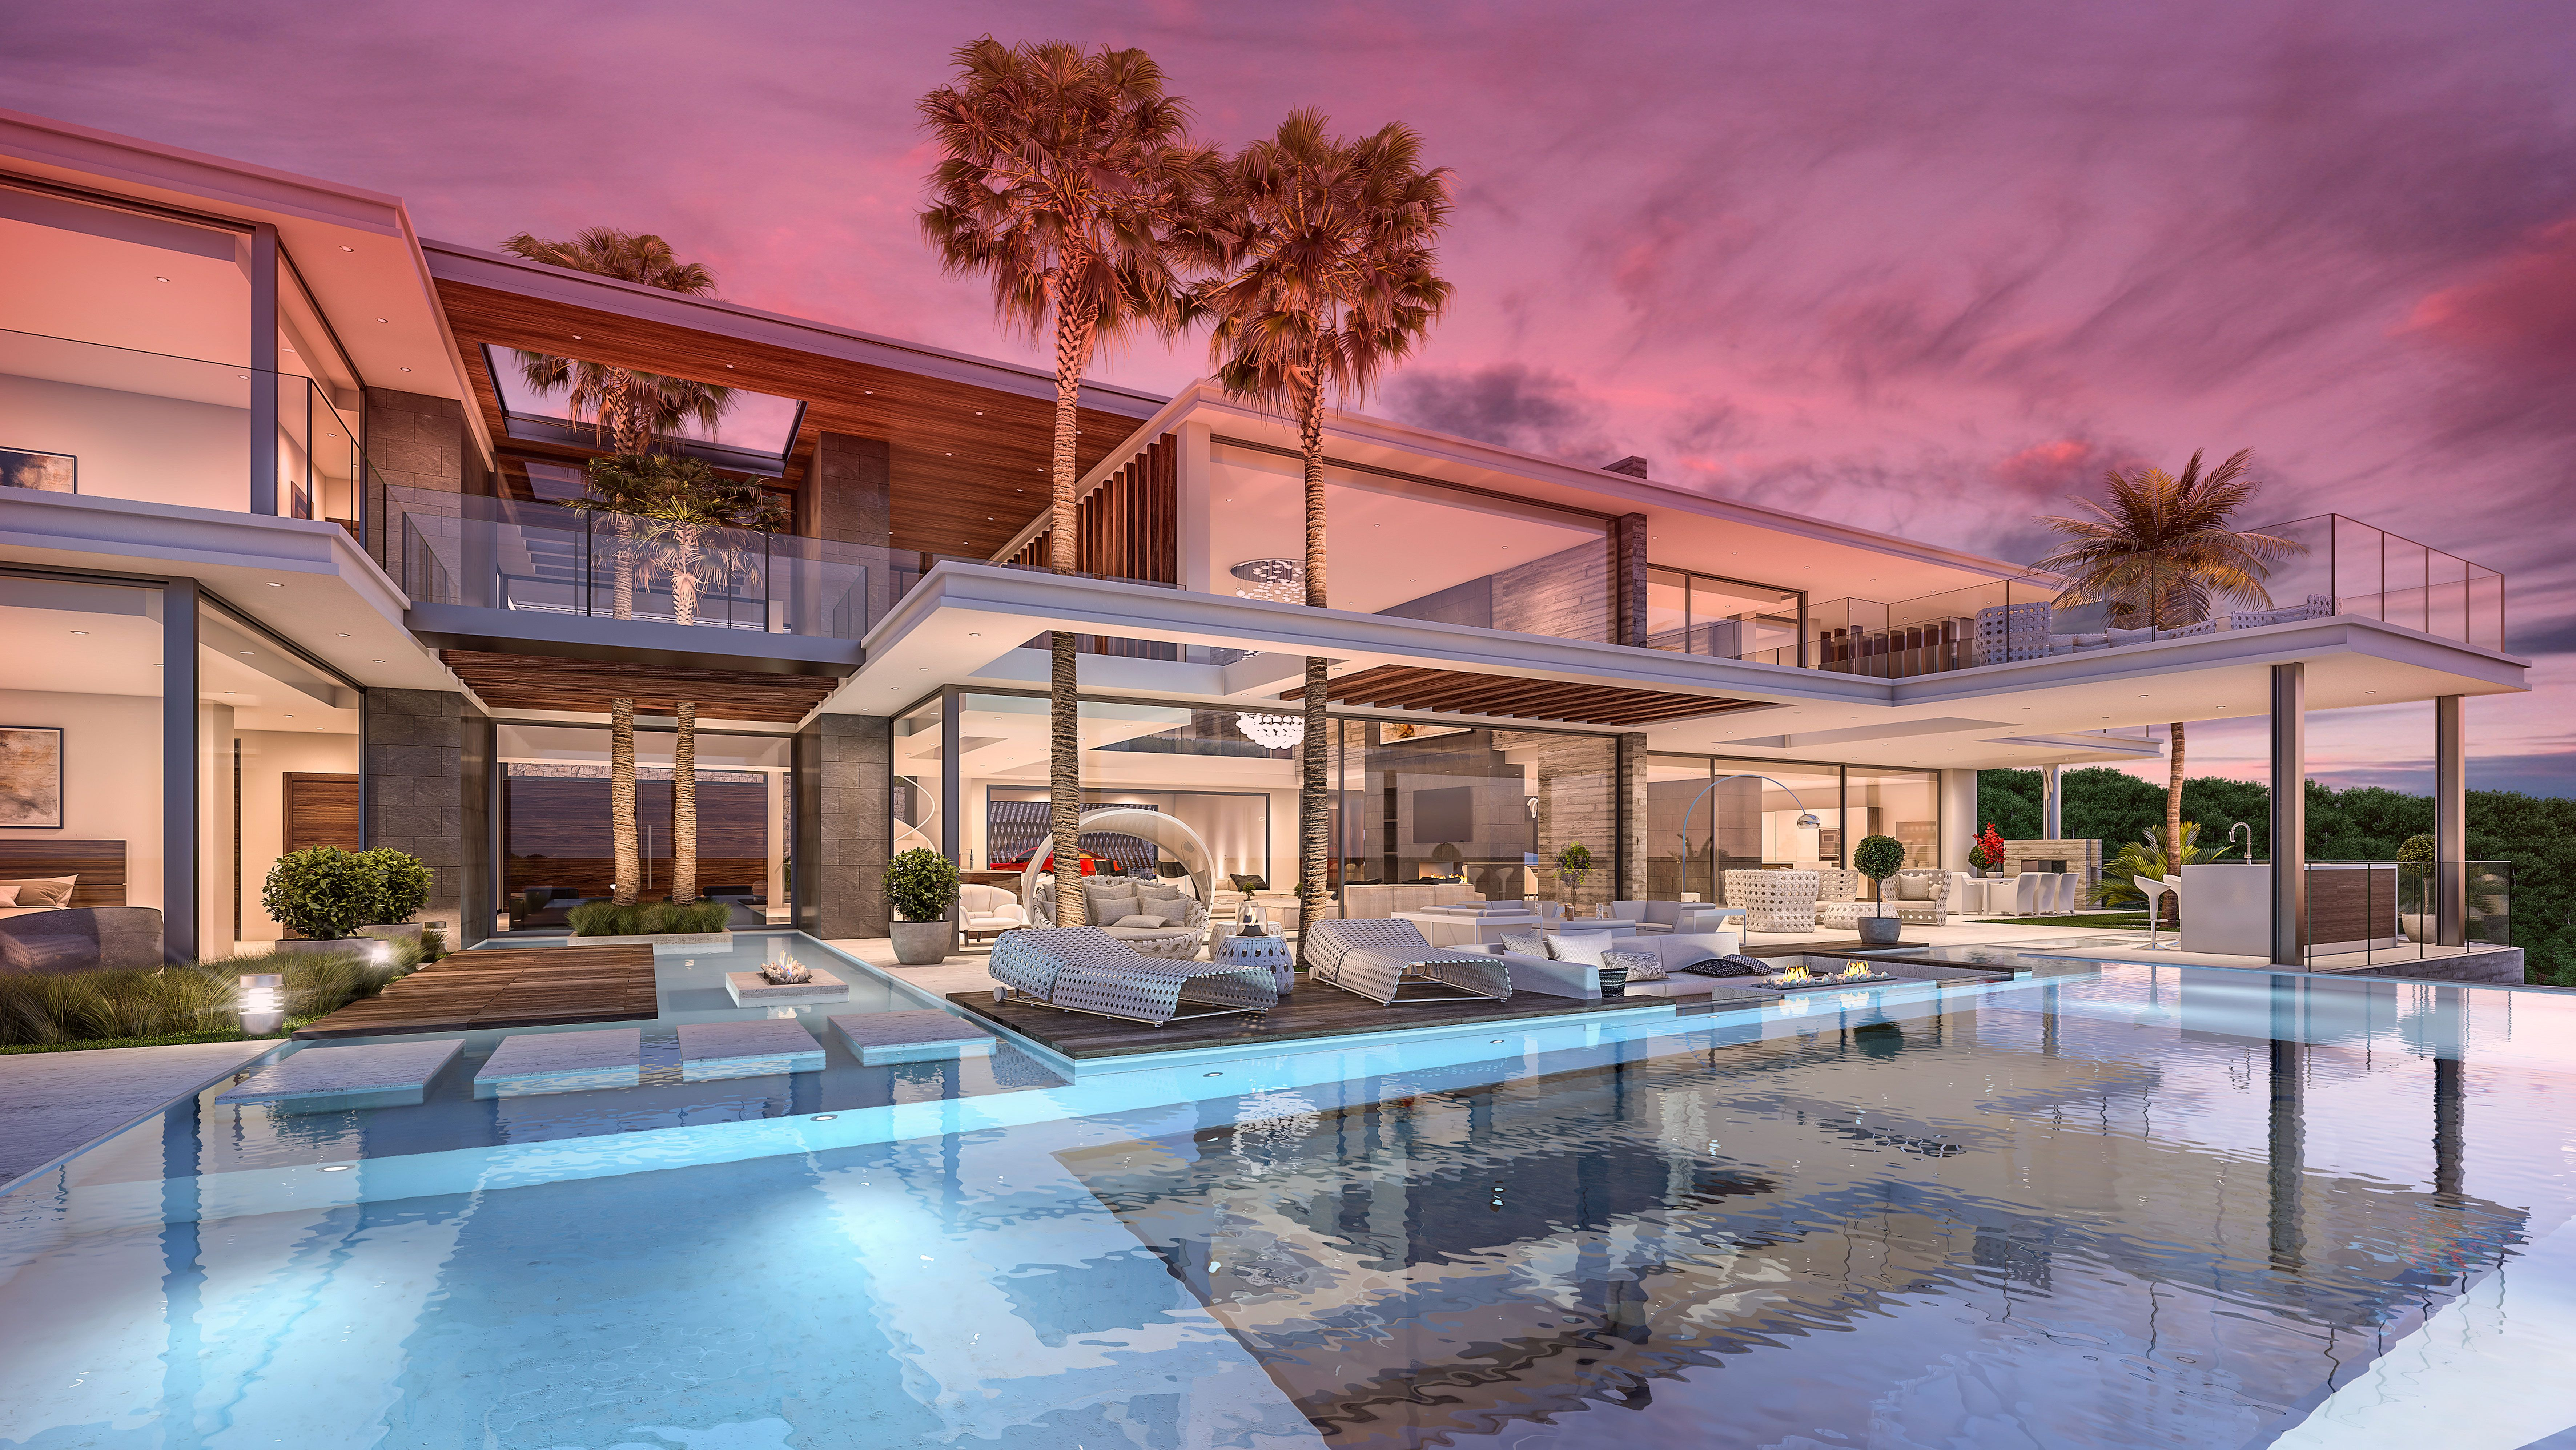 Luxury Modern Villa For Sale In La Zagaleta Marbella Designed By Kristina O Brateng And Develope Luxury Homes Dream Houses Modern Mansion Architecture House